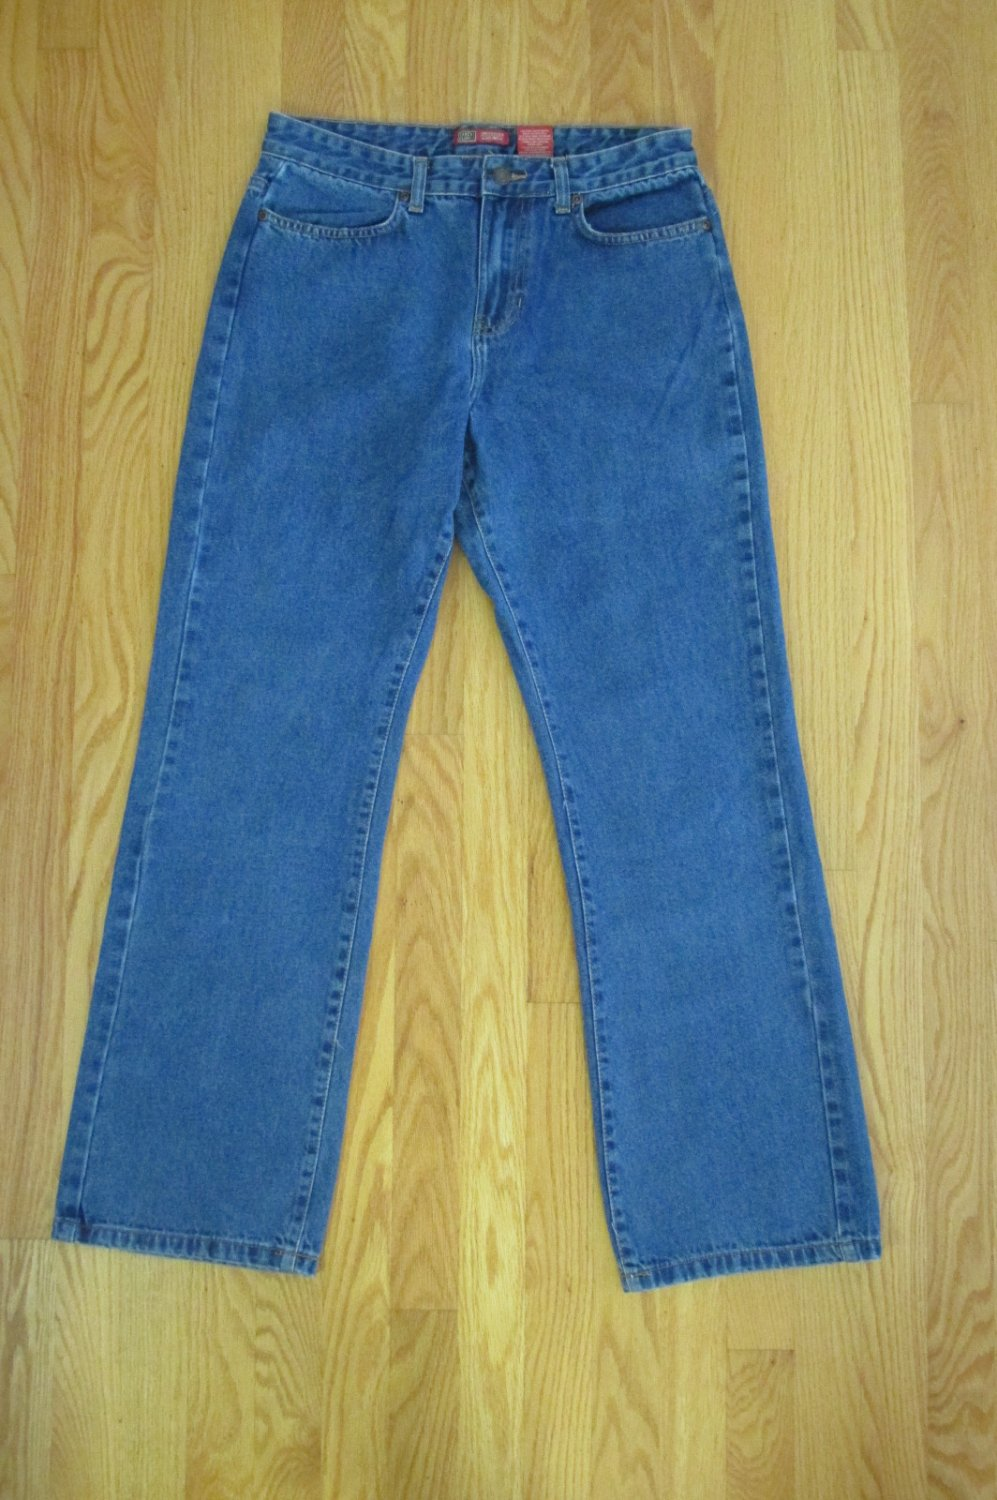 FADED GLORY WOMEN'S SIZE 12 AVG JEANS MED BLUE DENIM BOOT CUT COUNTRY WESTERN COW BOY GIRL